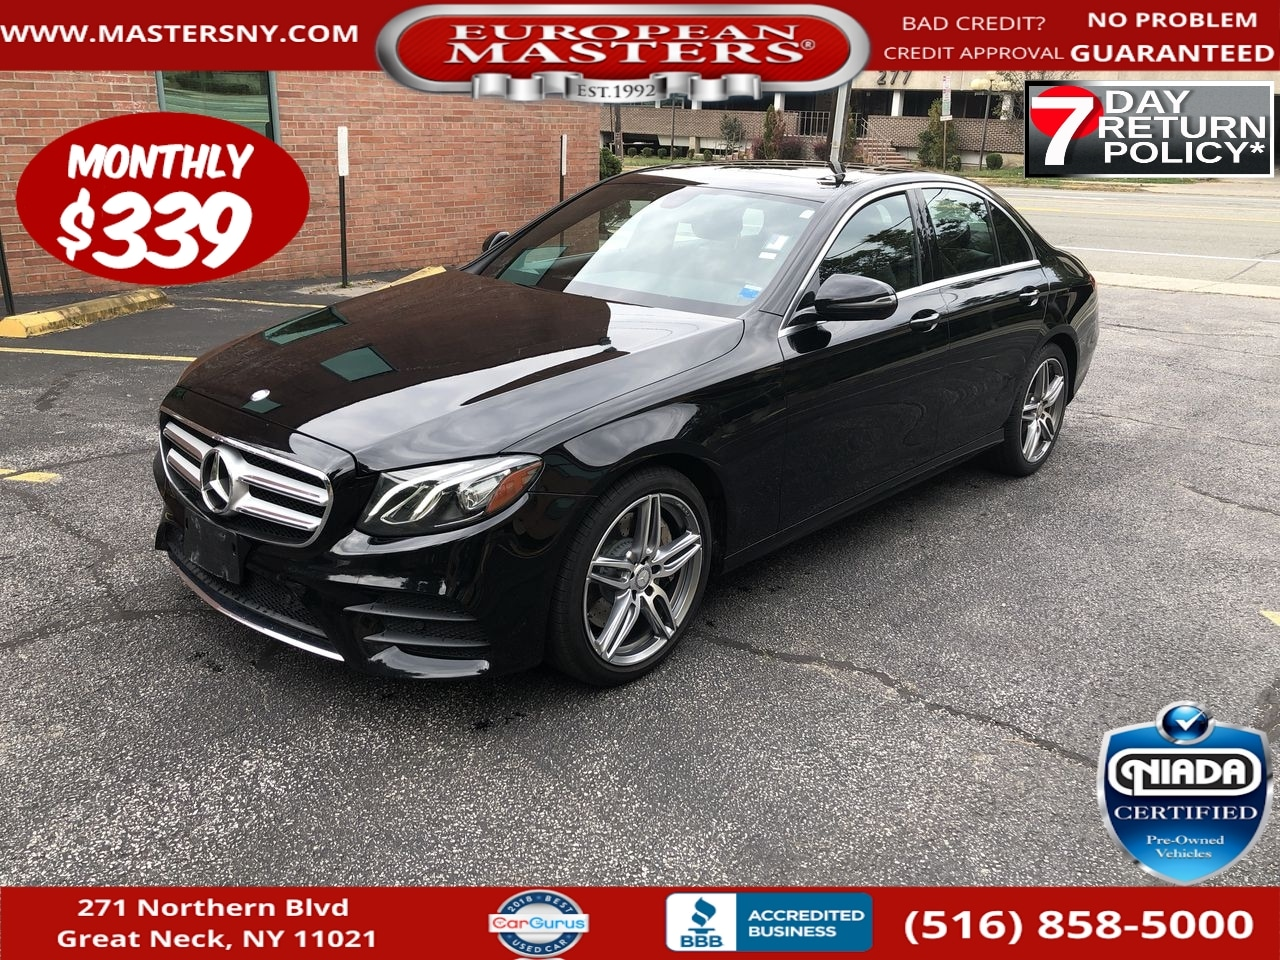 Used Mercedes Benz E Class Great Neck Ny